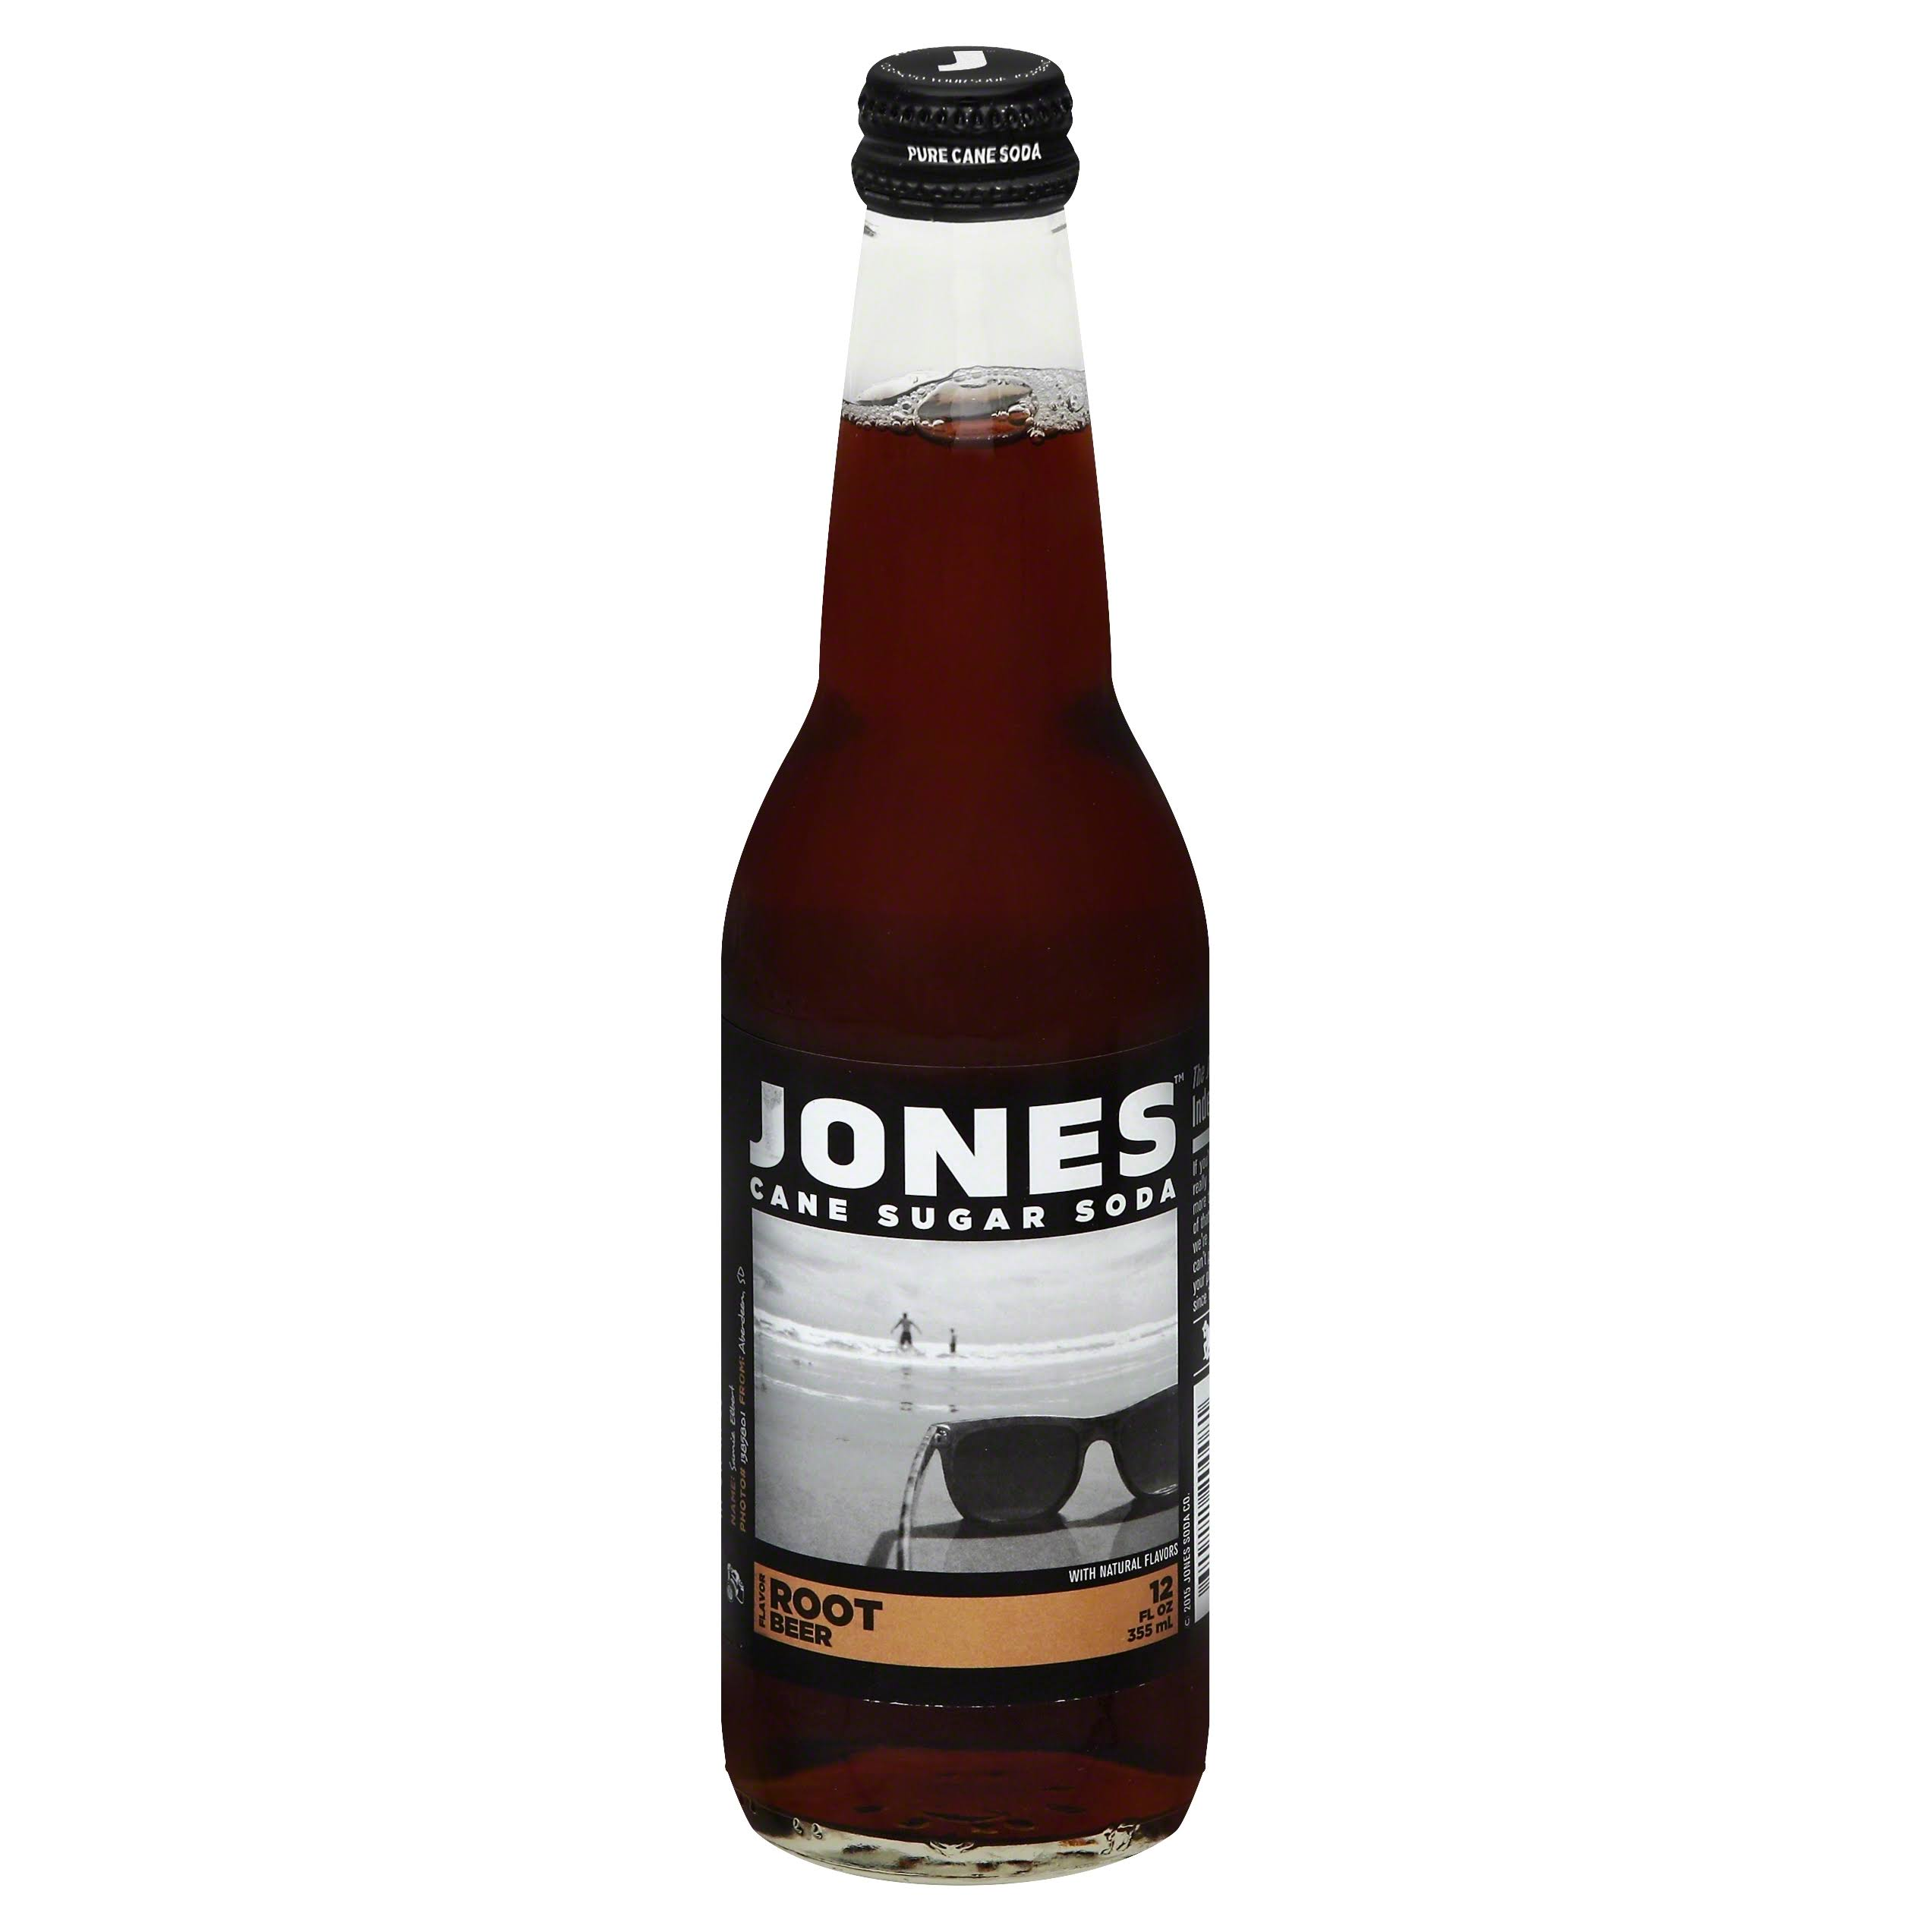 Jones Soda, Cane Sugar, Root Beer Flavor - 12 fl oz